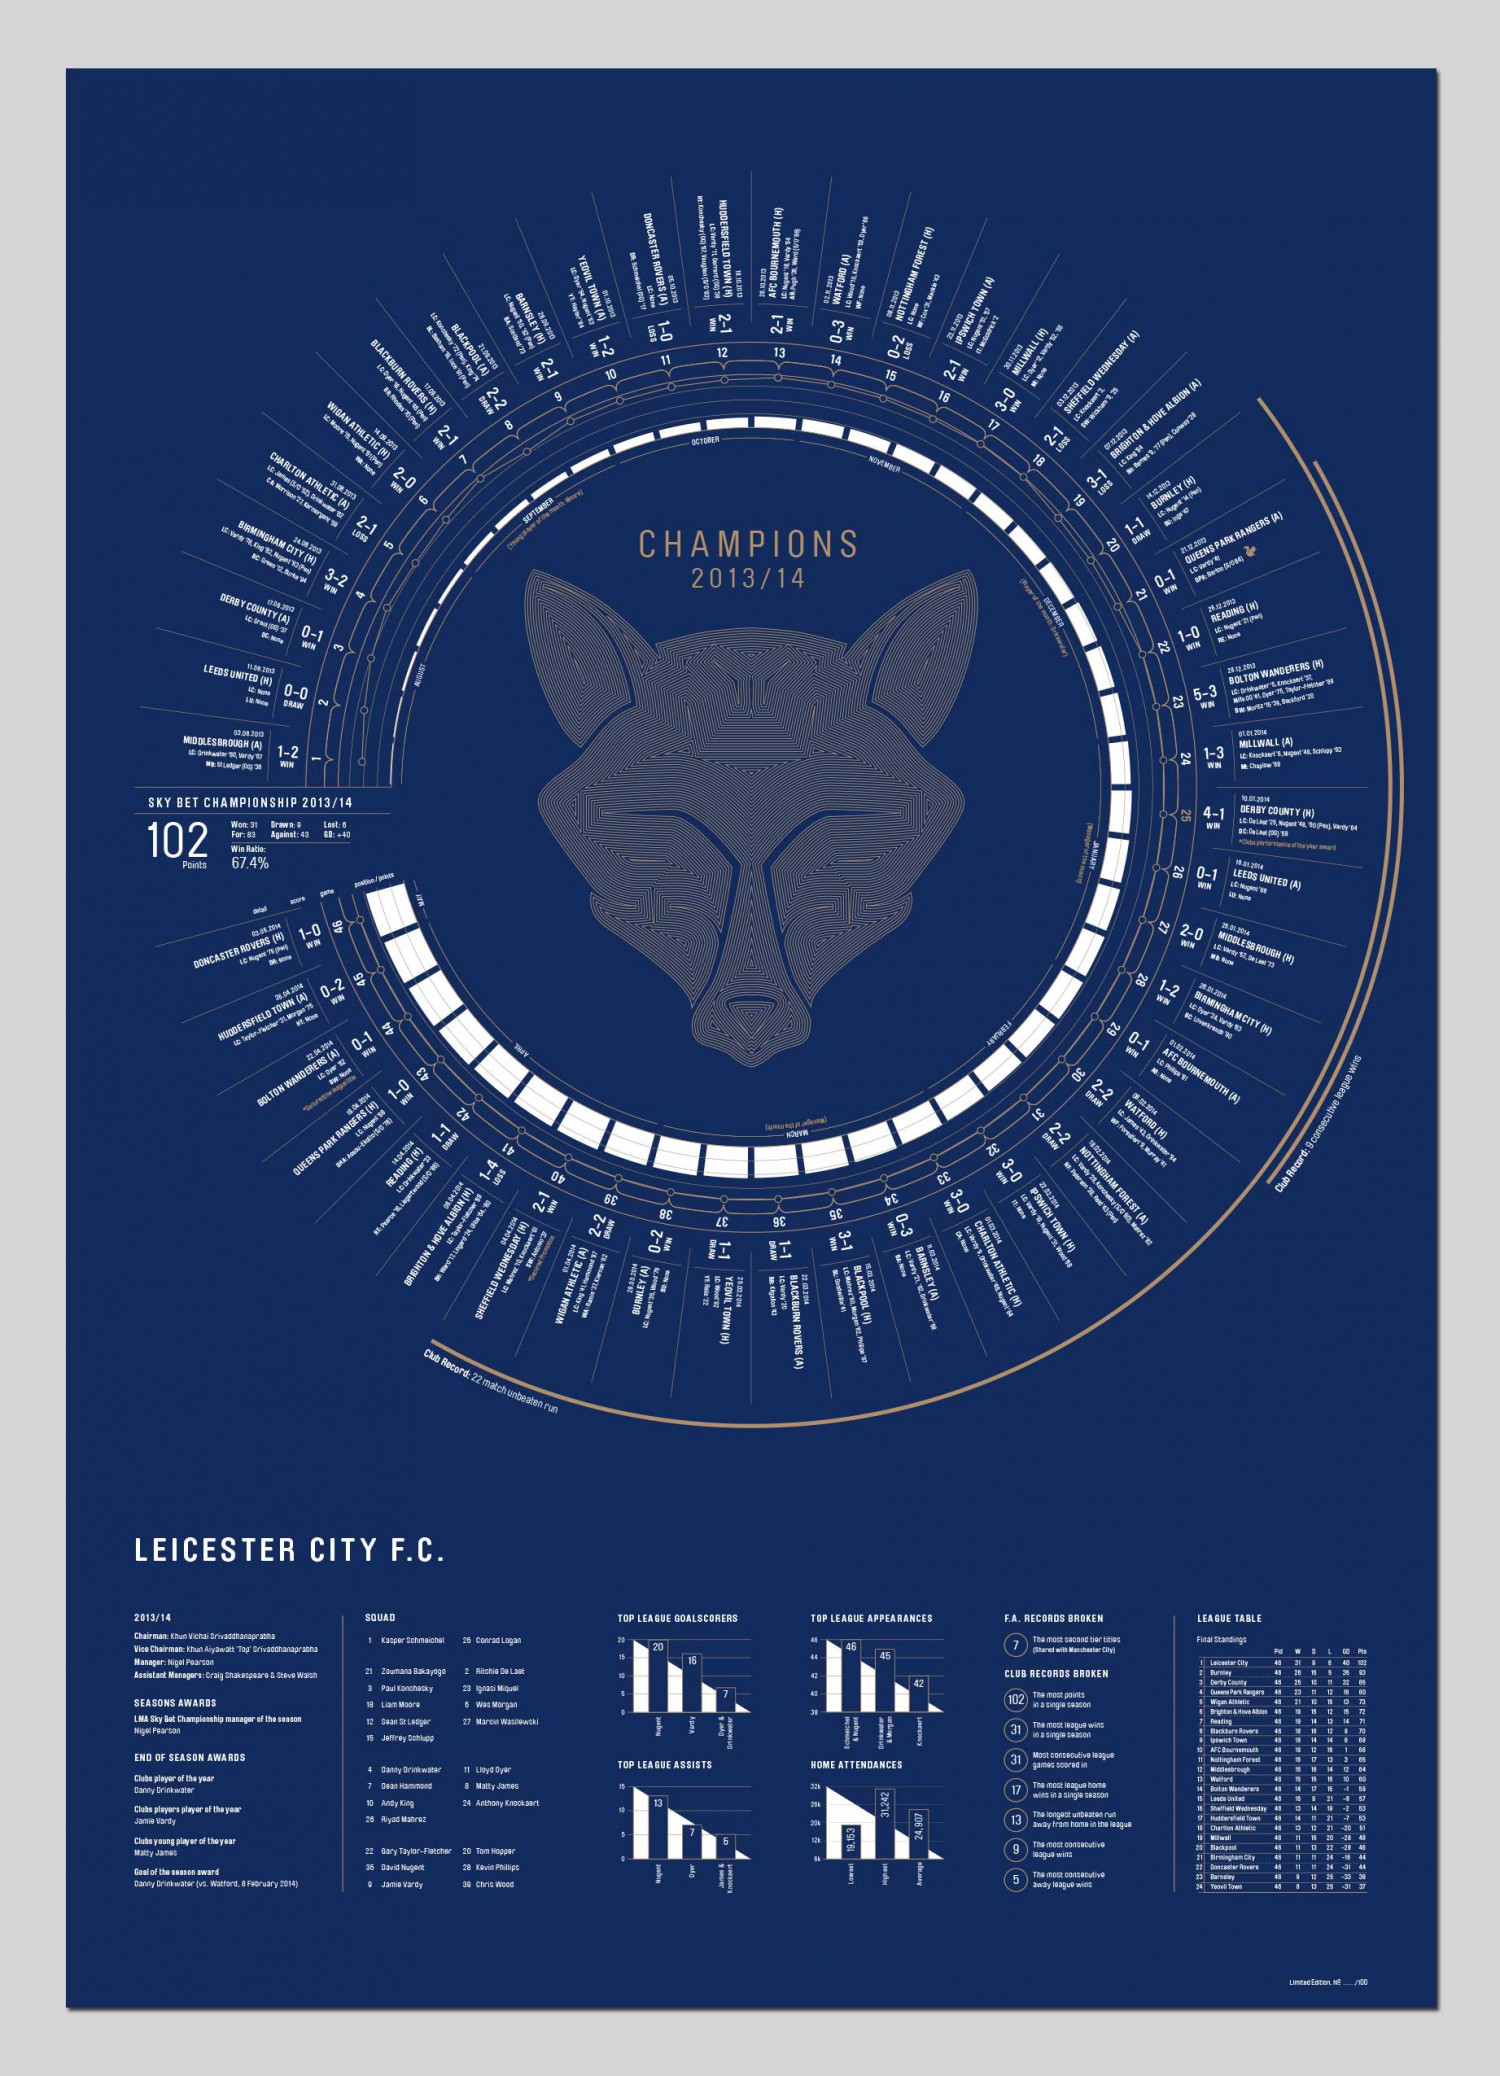 LCFC: Champions Infographic